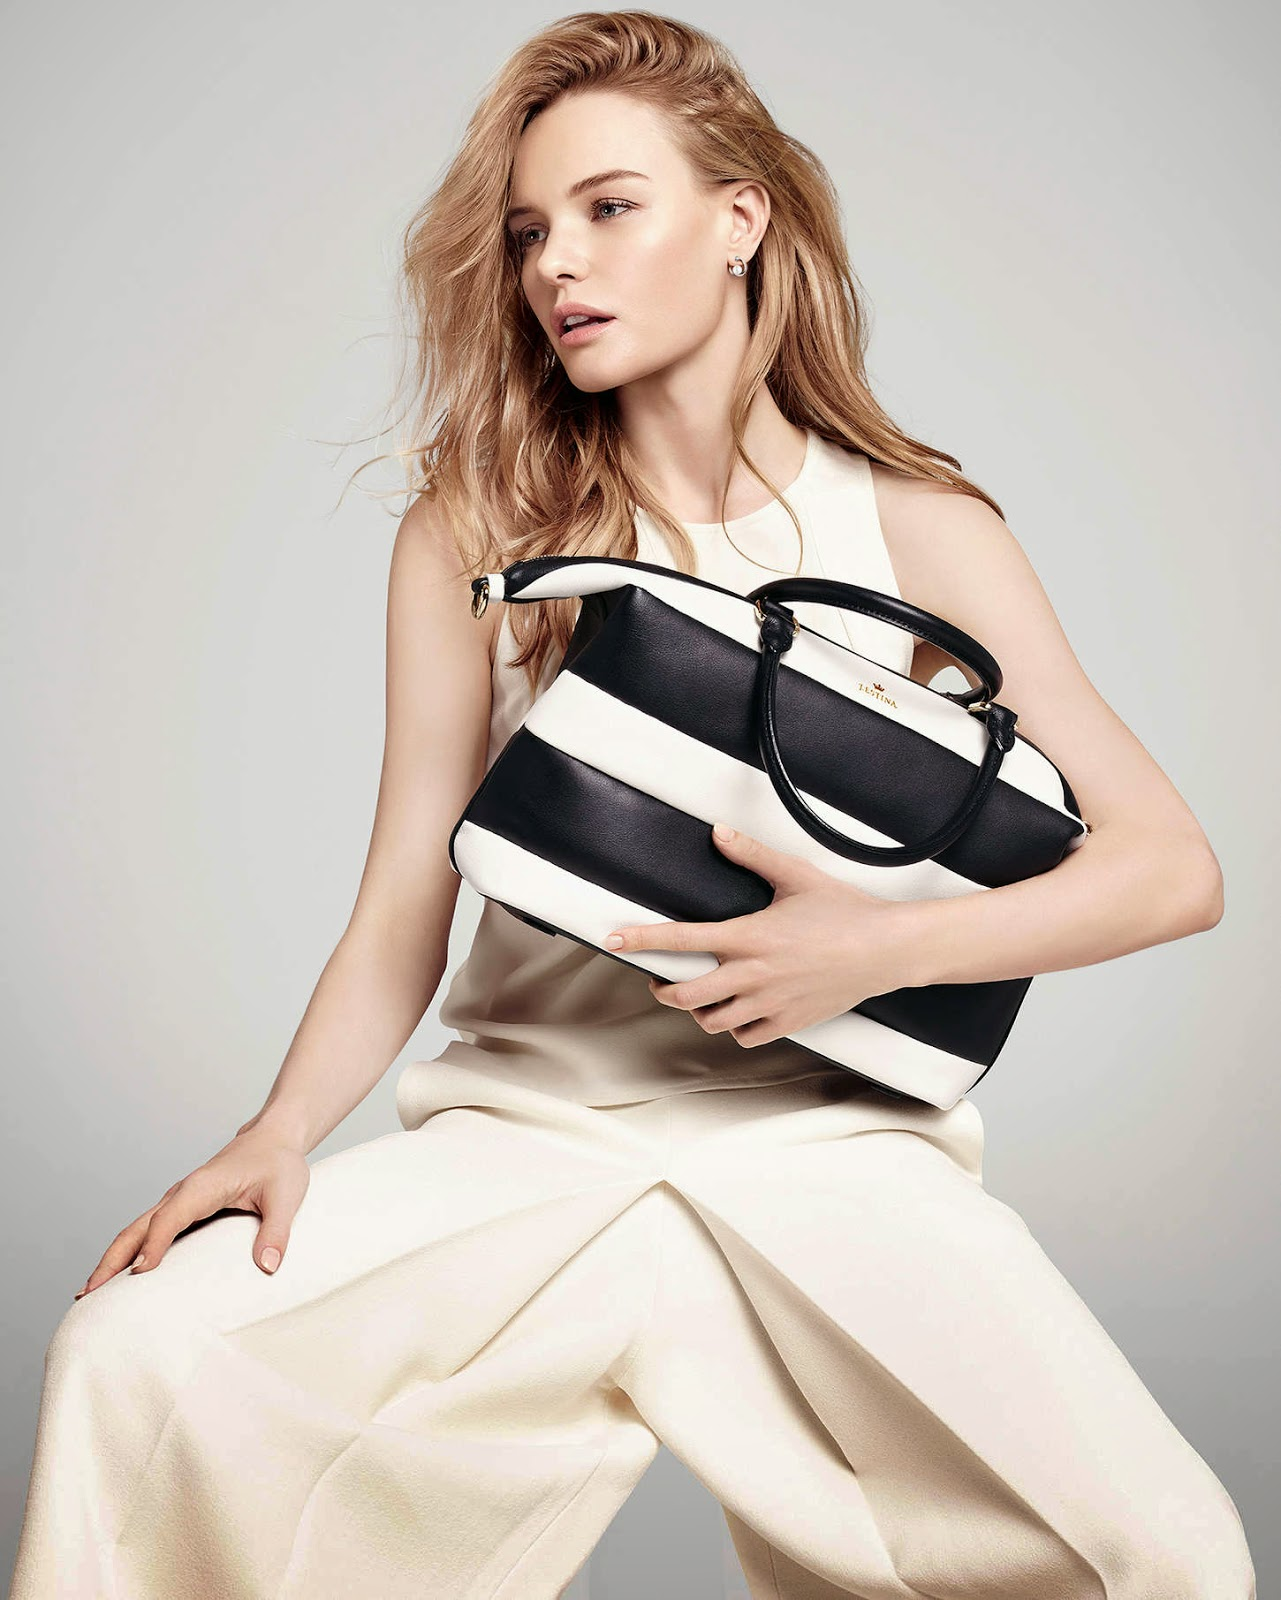 J.Estina Spring/Summer 2015 Campaign featuring Kate Bosworth